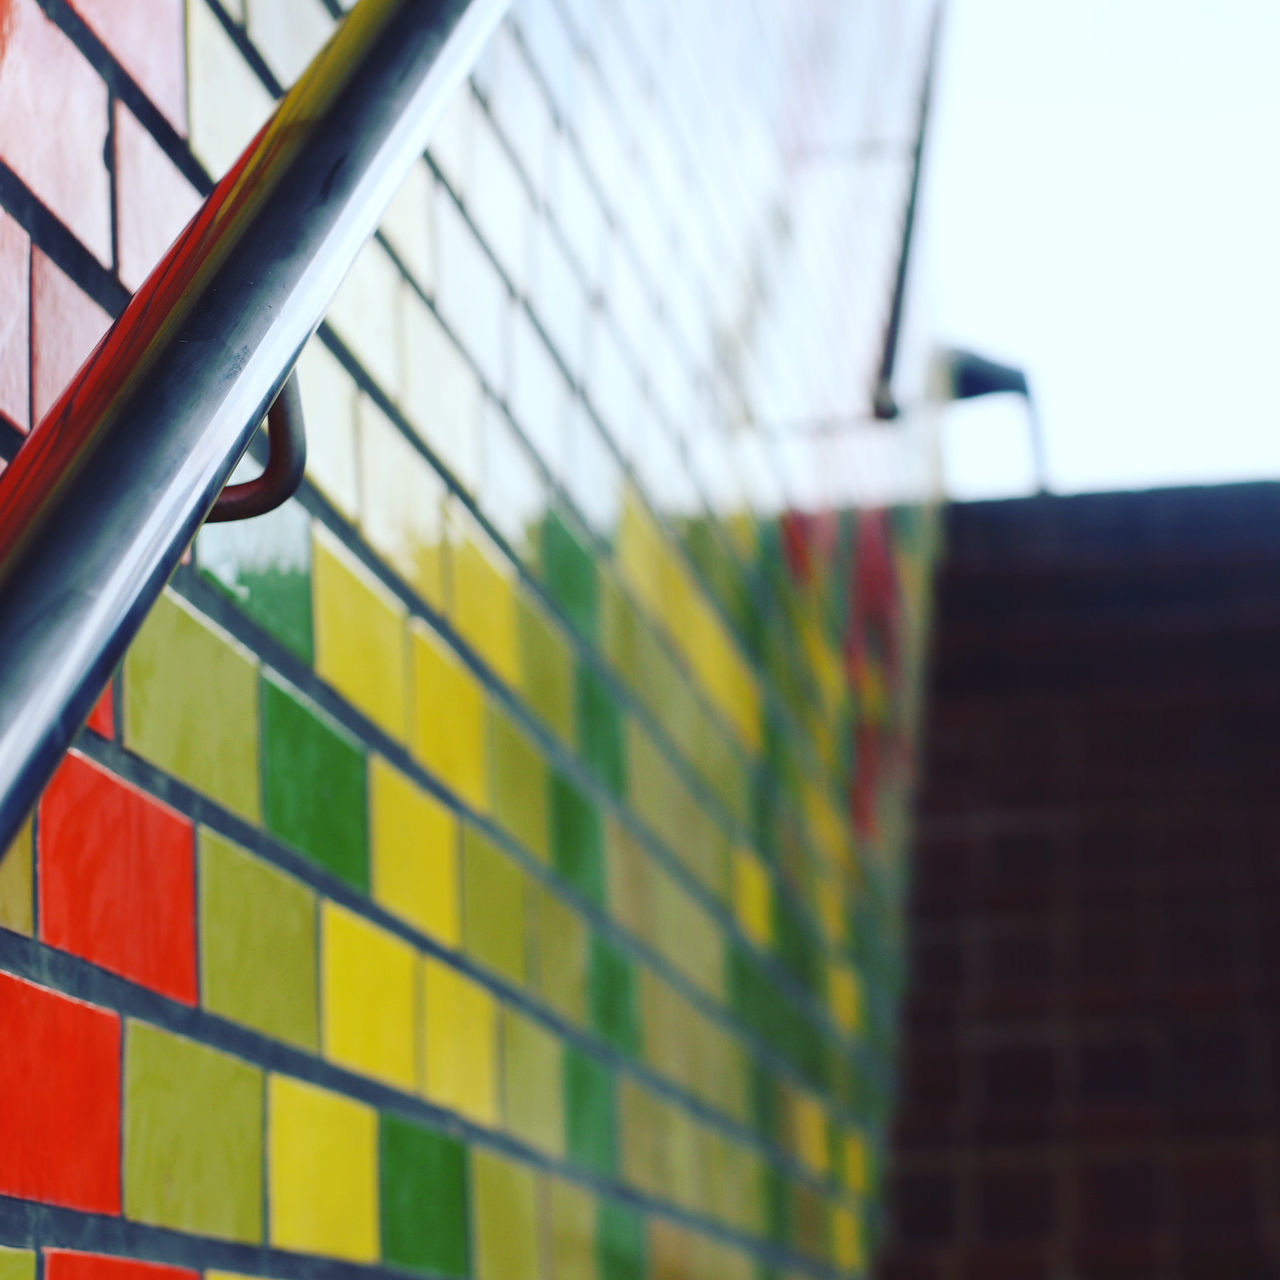 LOW ANGLE VIEW OF METAL FENCE AGAINST MULTI COLORED WALL